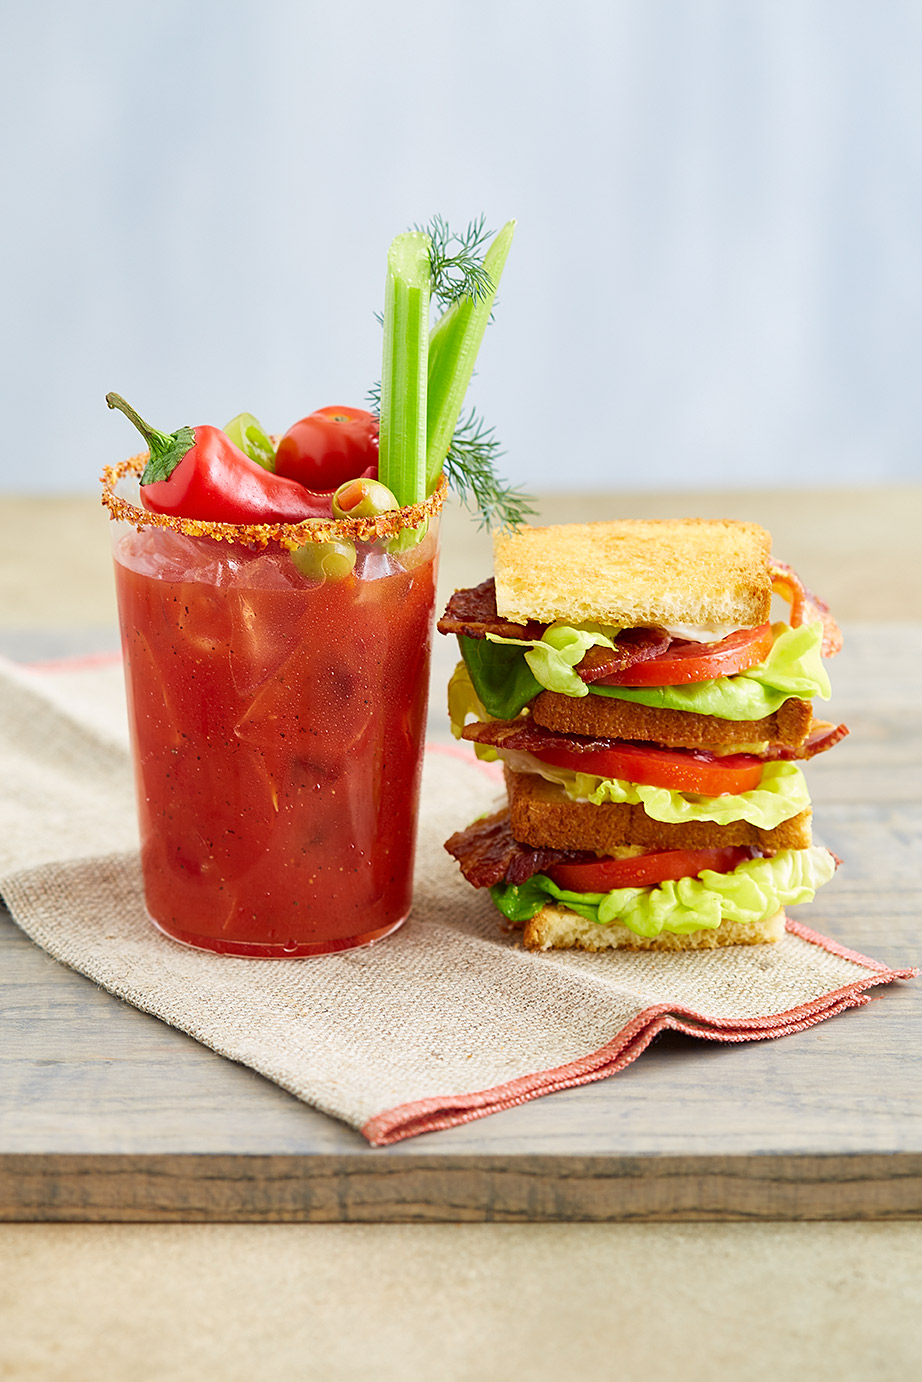 Bloody-Mary-With-Sandwich-0031.jpg